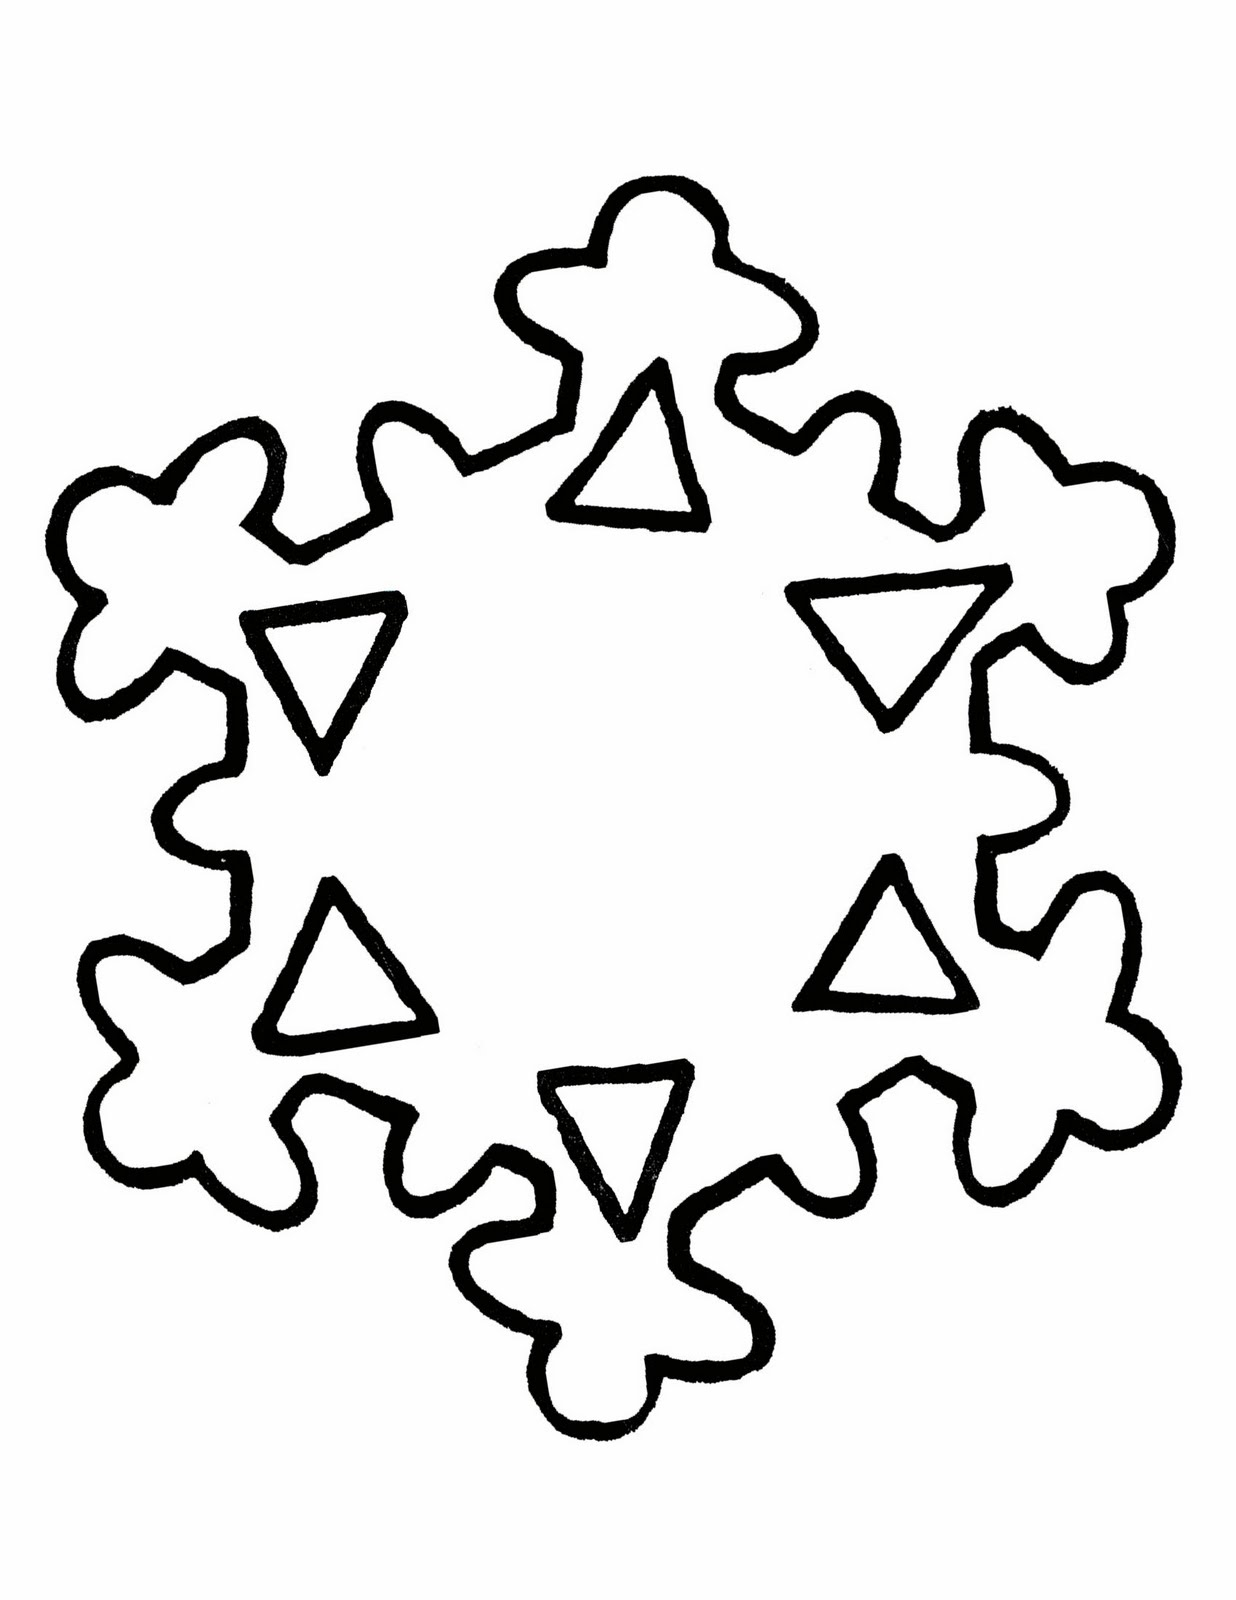 It's just a picture of Delicate Free Printable Snowflake Patterns